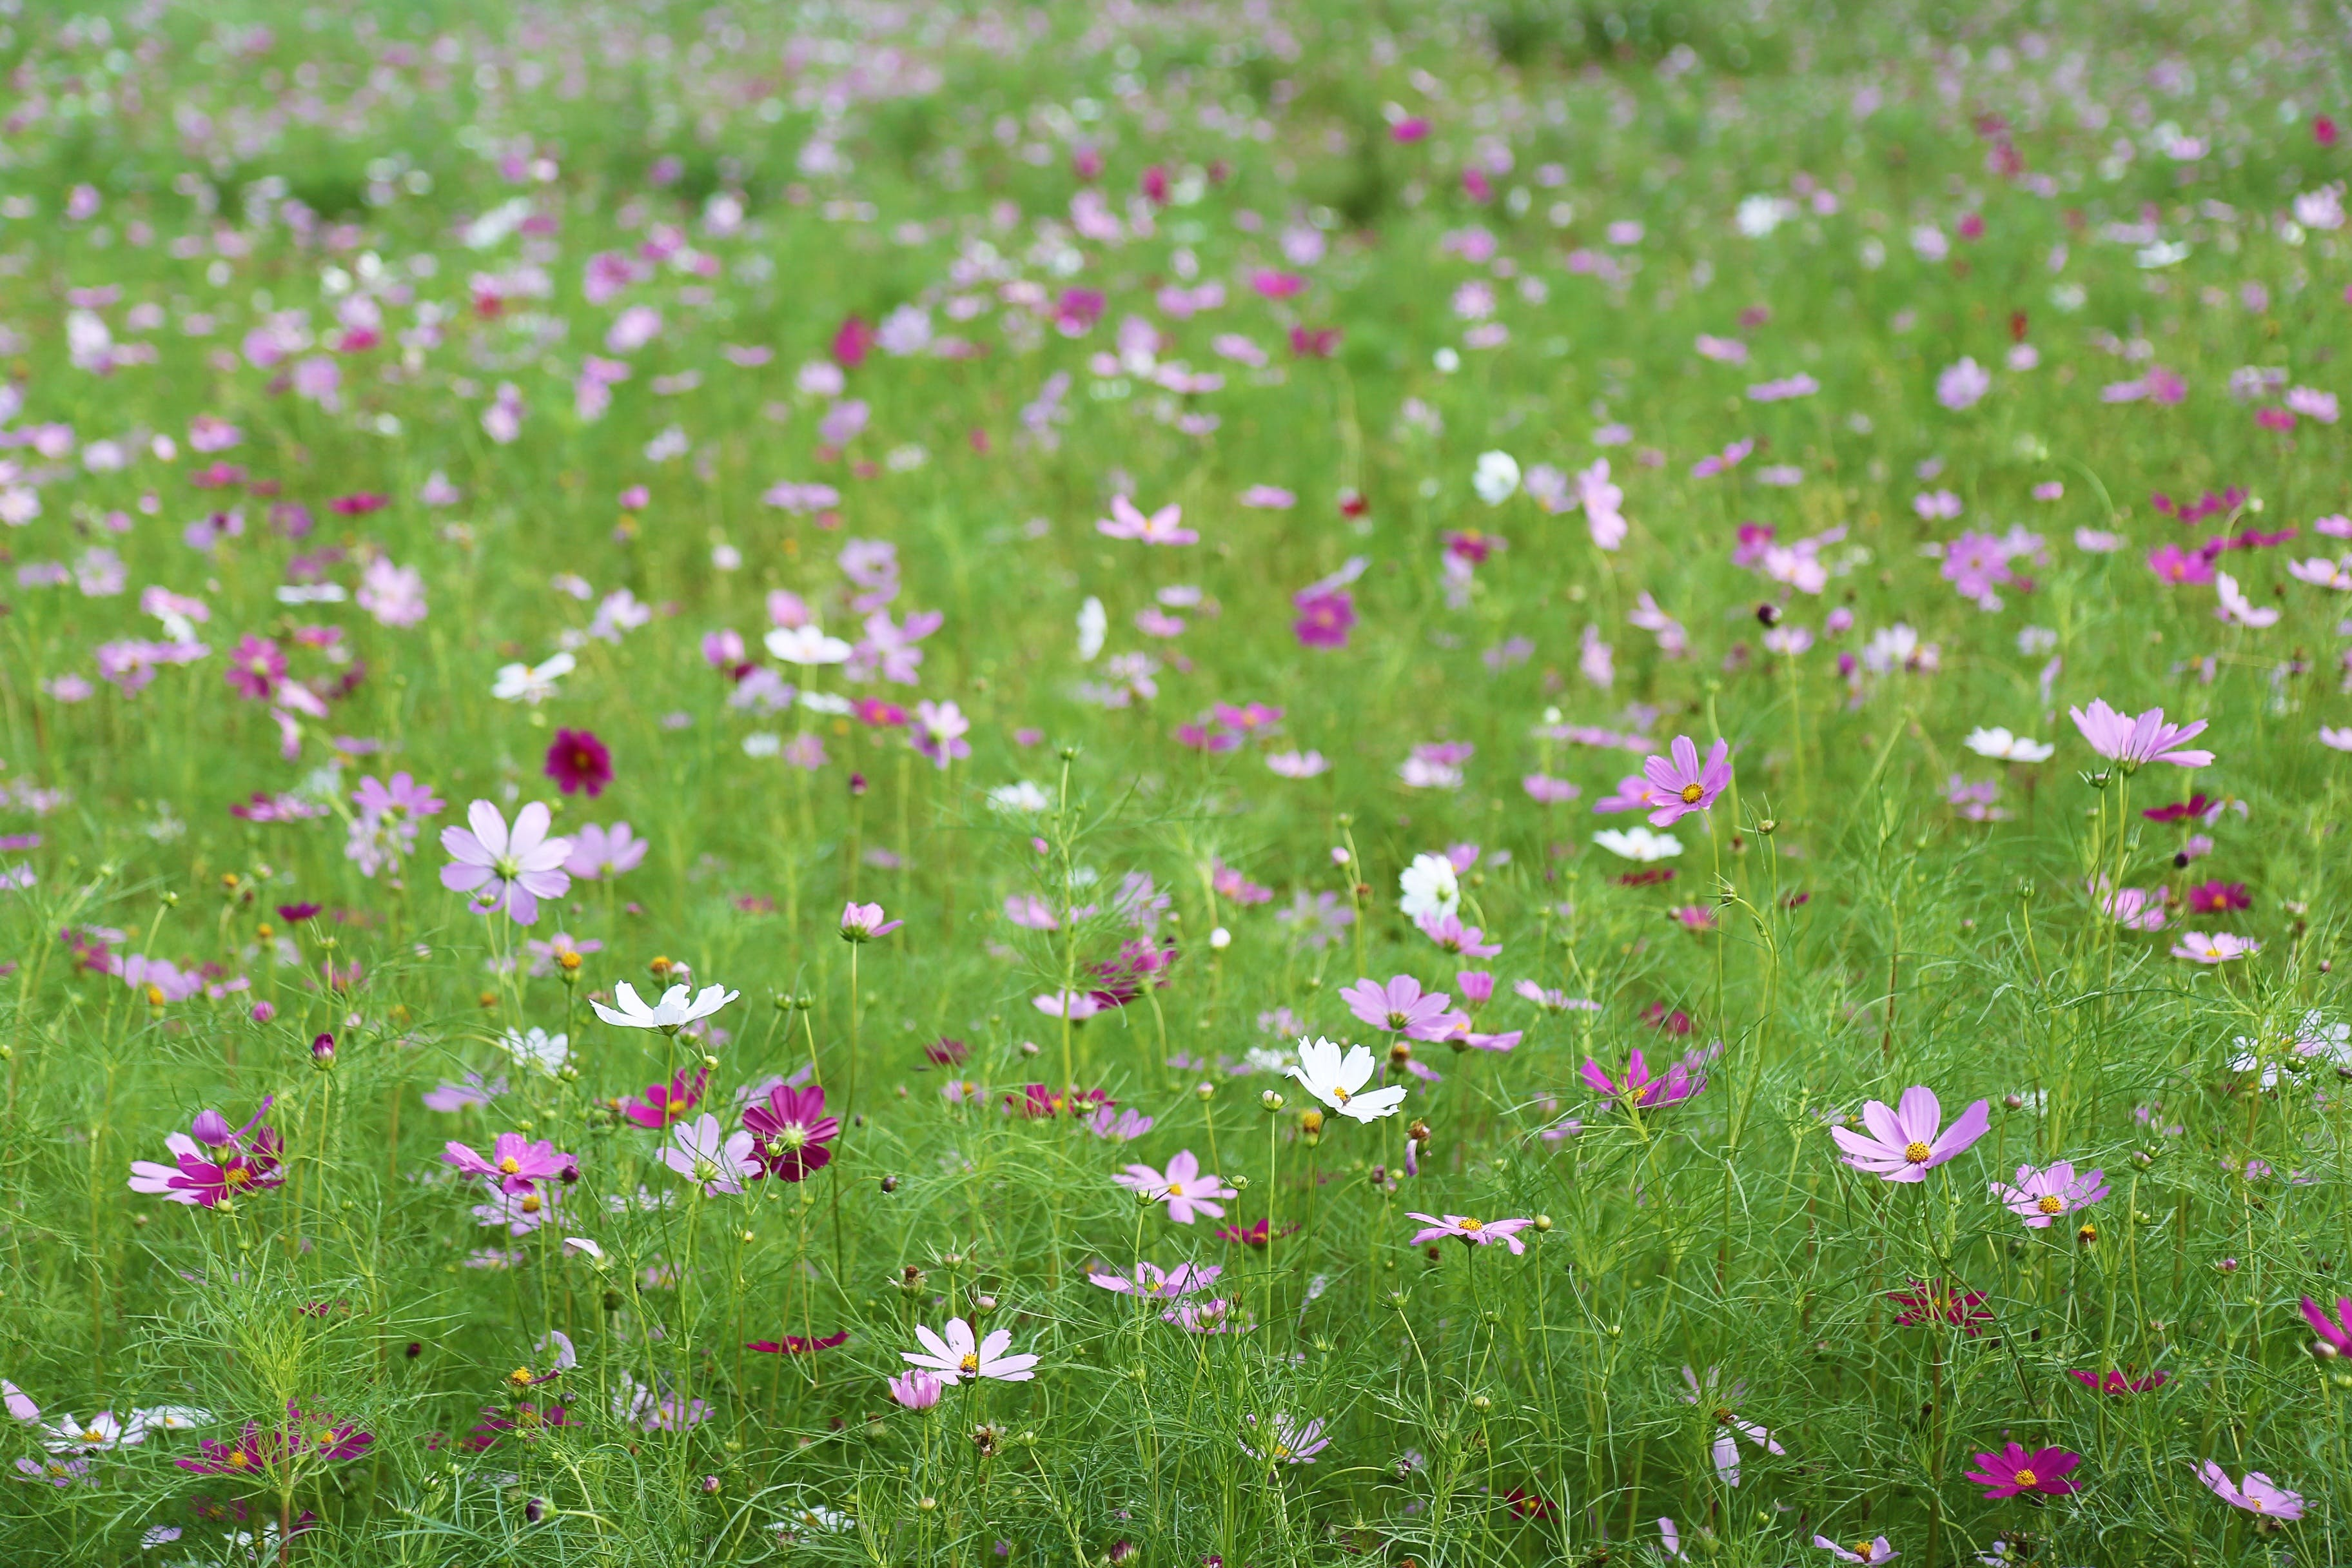 Close-up of Pink Flowers in Meadow